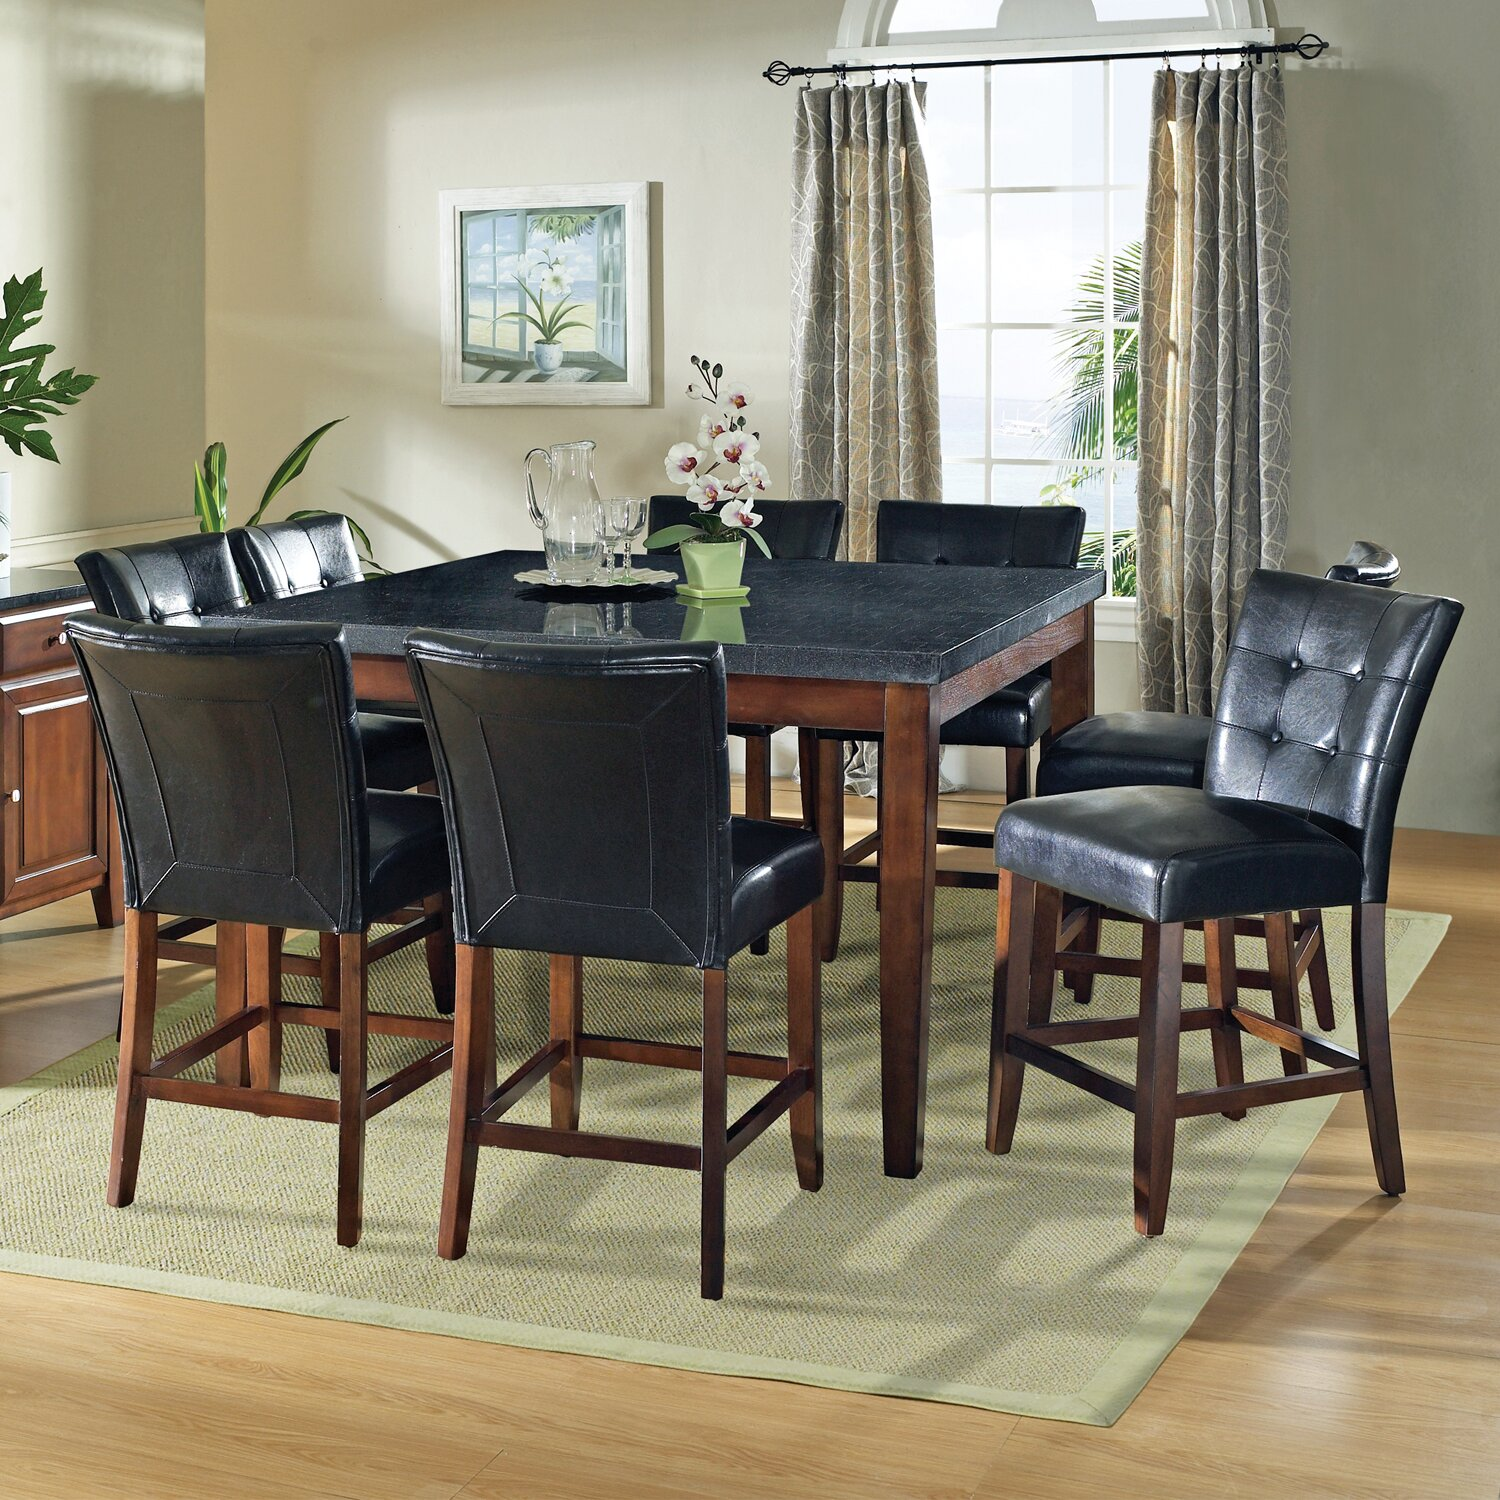 Darby home co matheson 5 piece counter height dining set for Counter height dining set